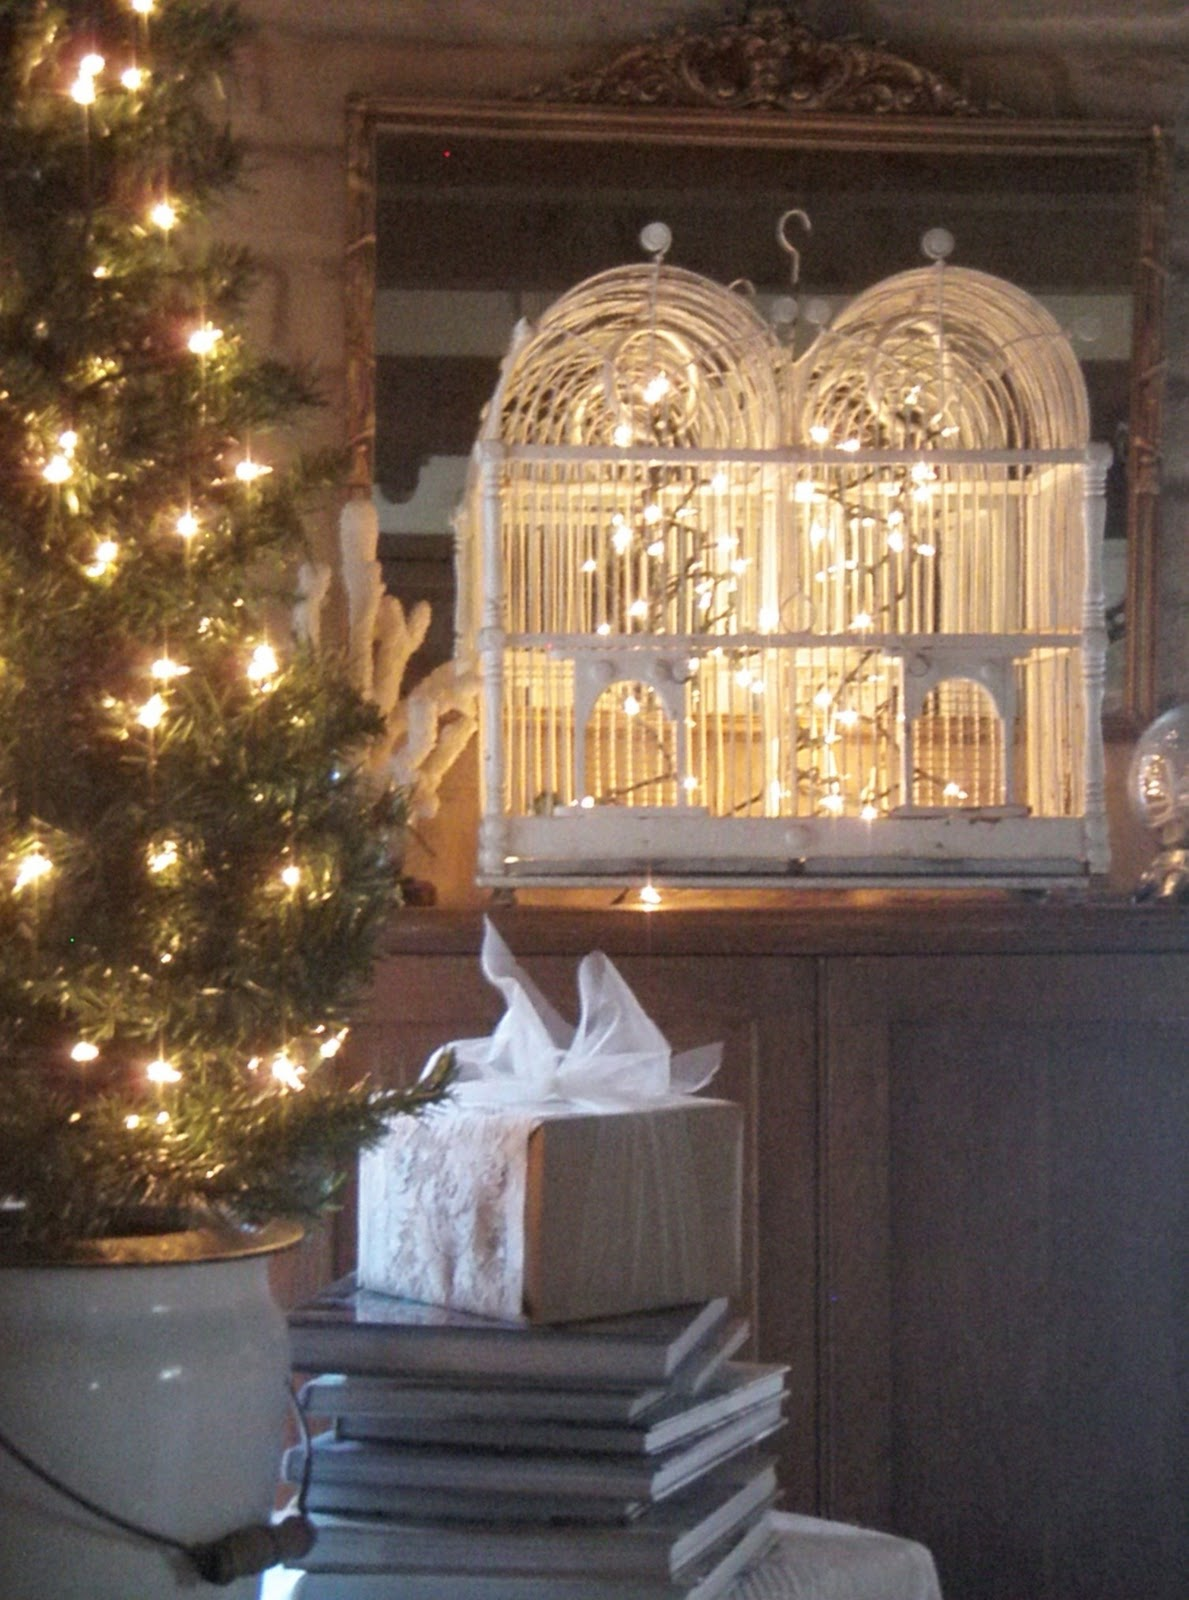 Our hopeful home christmas decorating with vintage birdcages for Inside xmas decorations